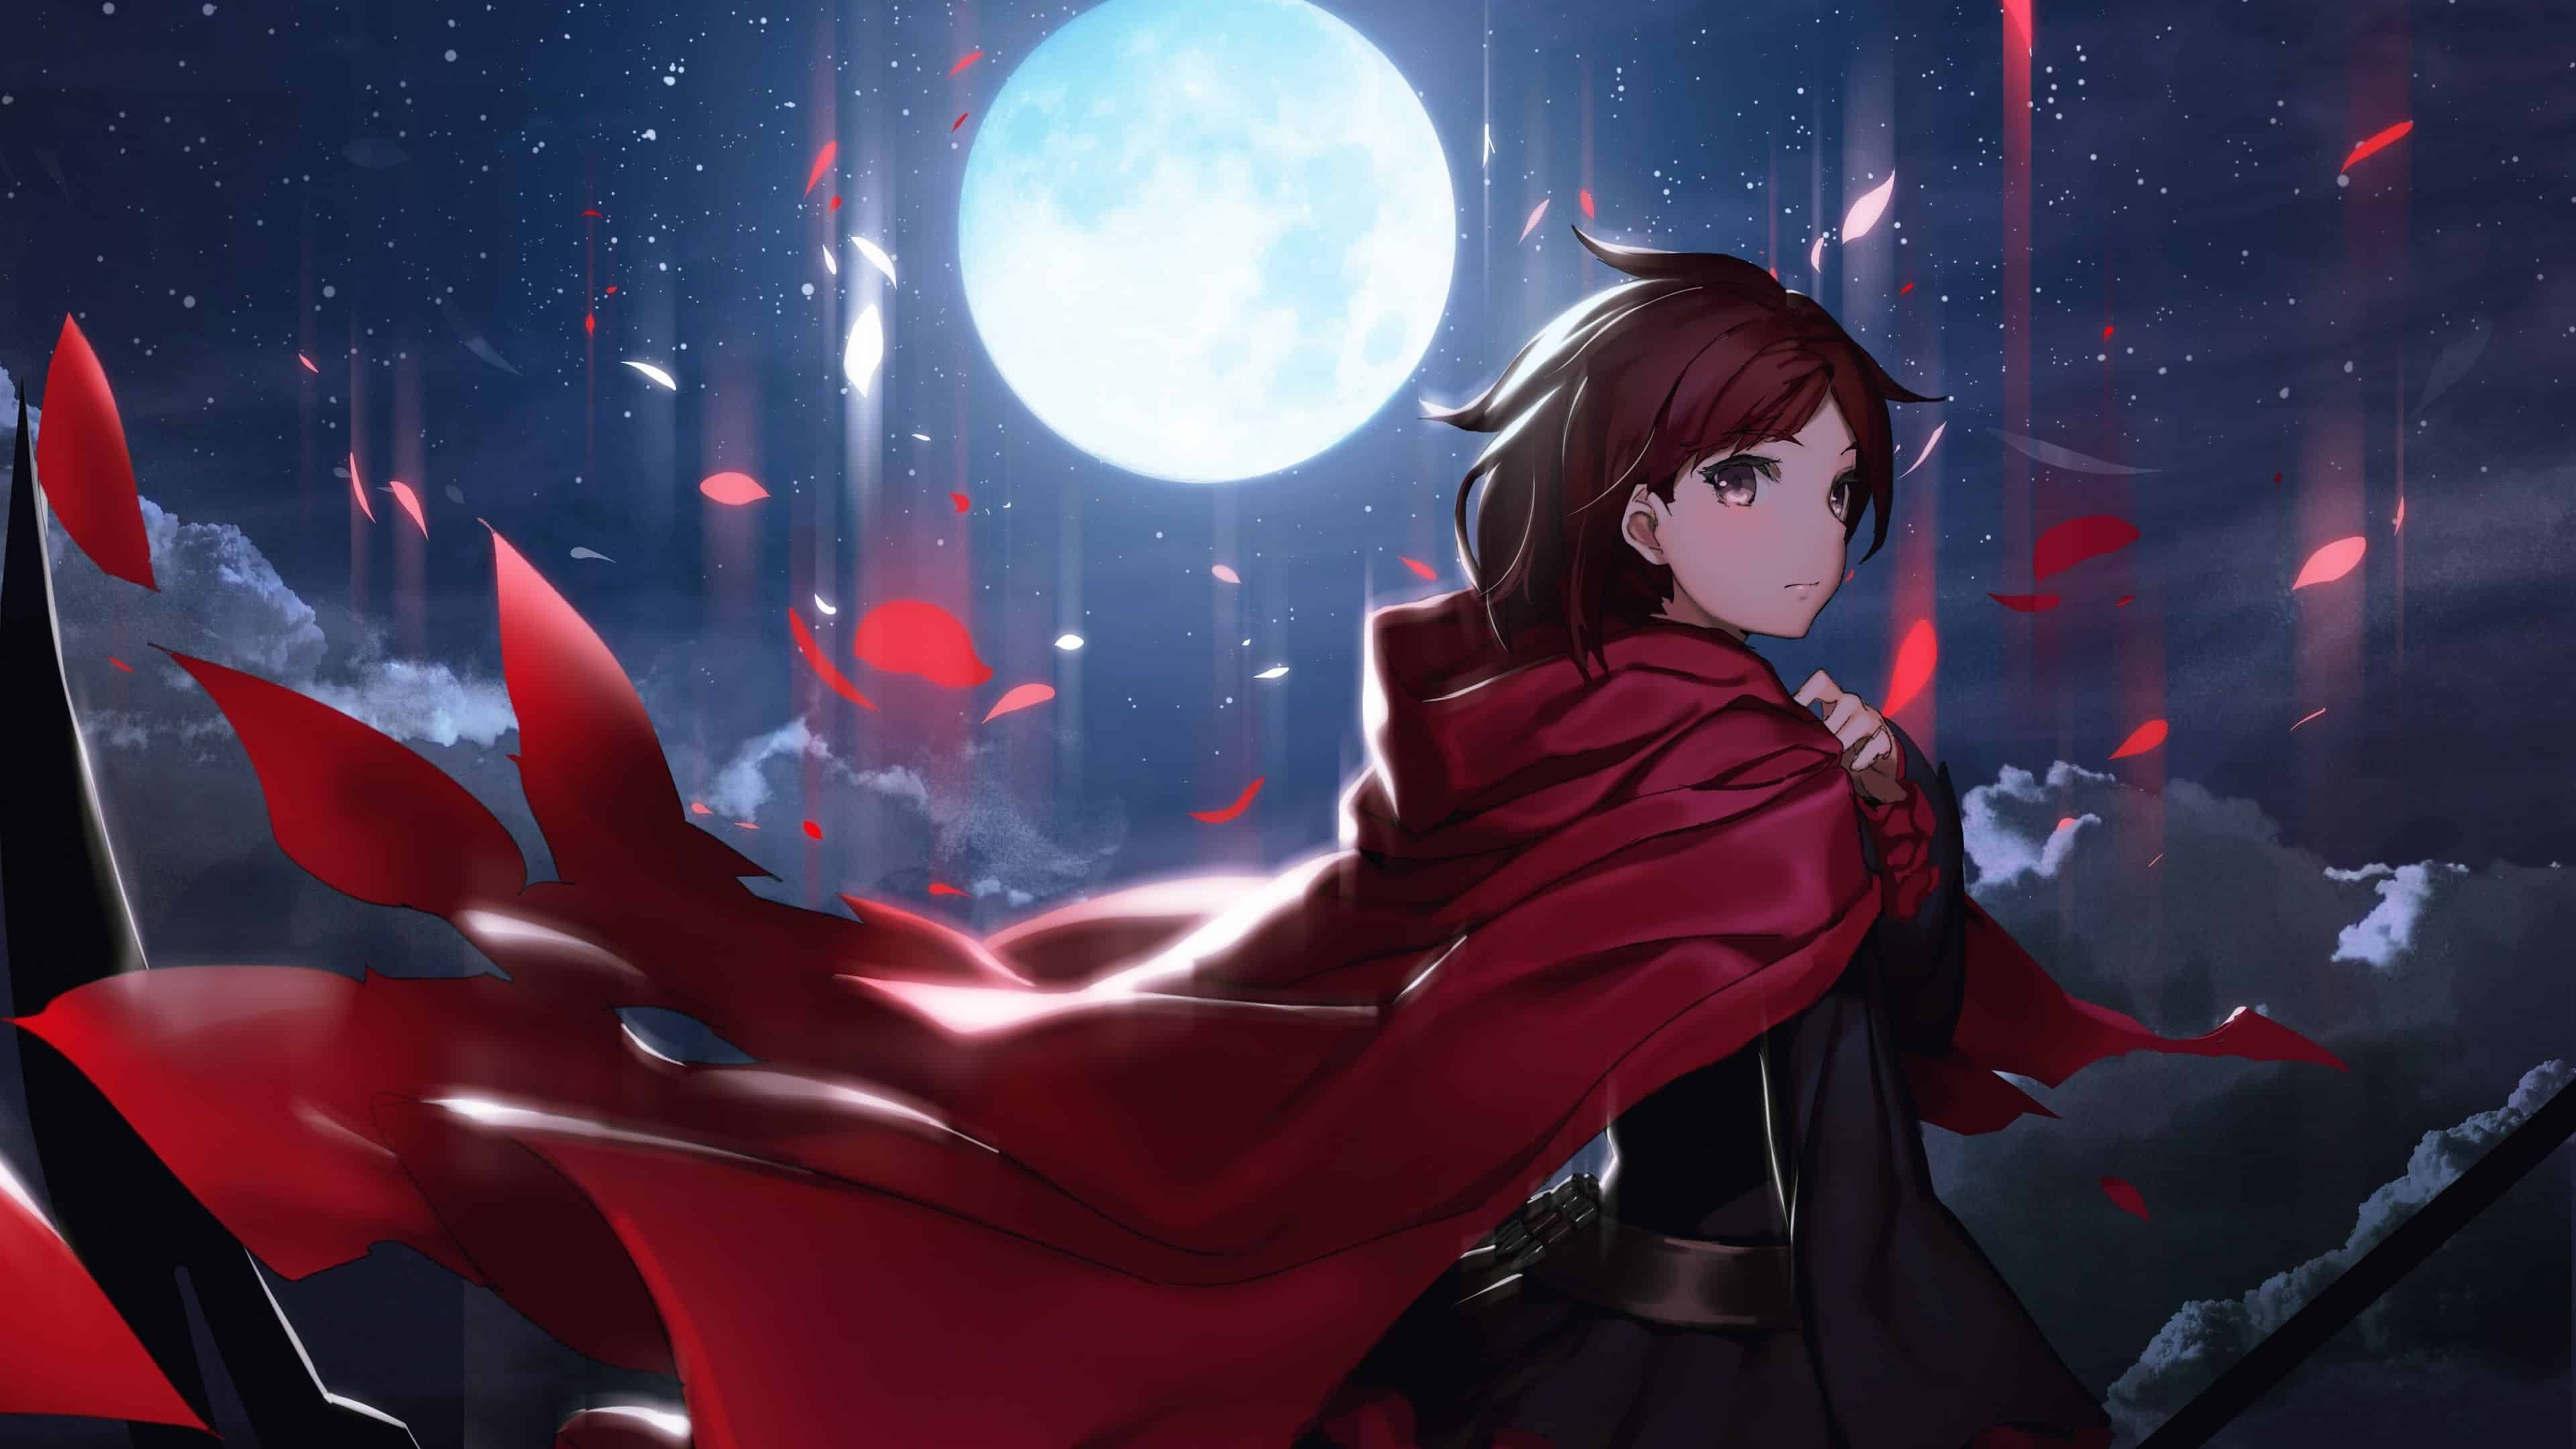 3840x2160 Rwby Ruby Uhd 4k Wallpaper Pixelz Rwby Anime Rwby Wallpaper Rwby